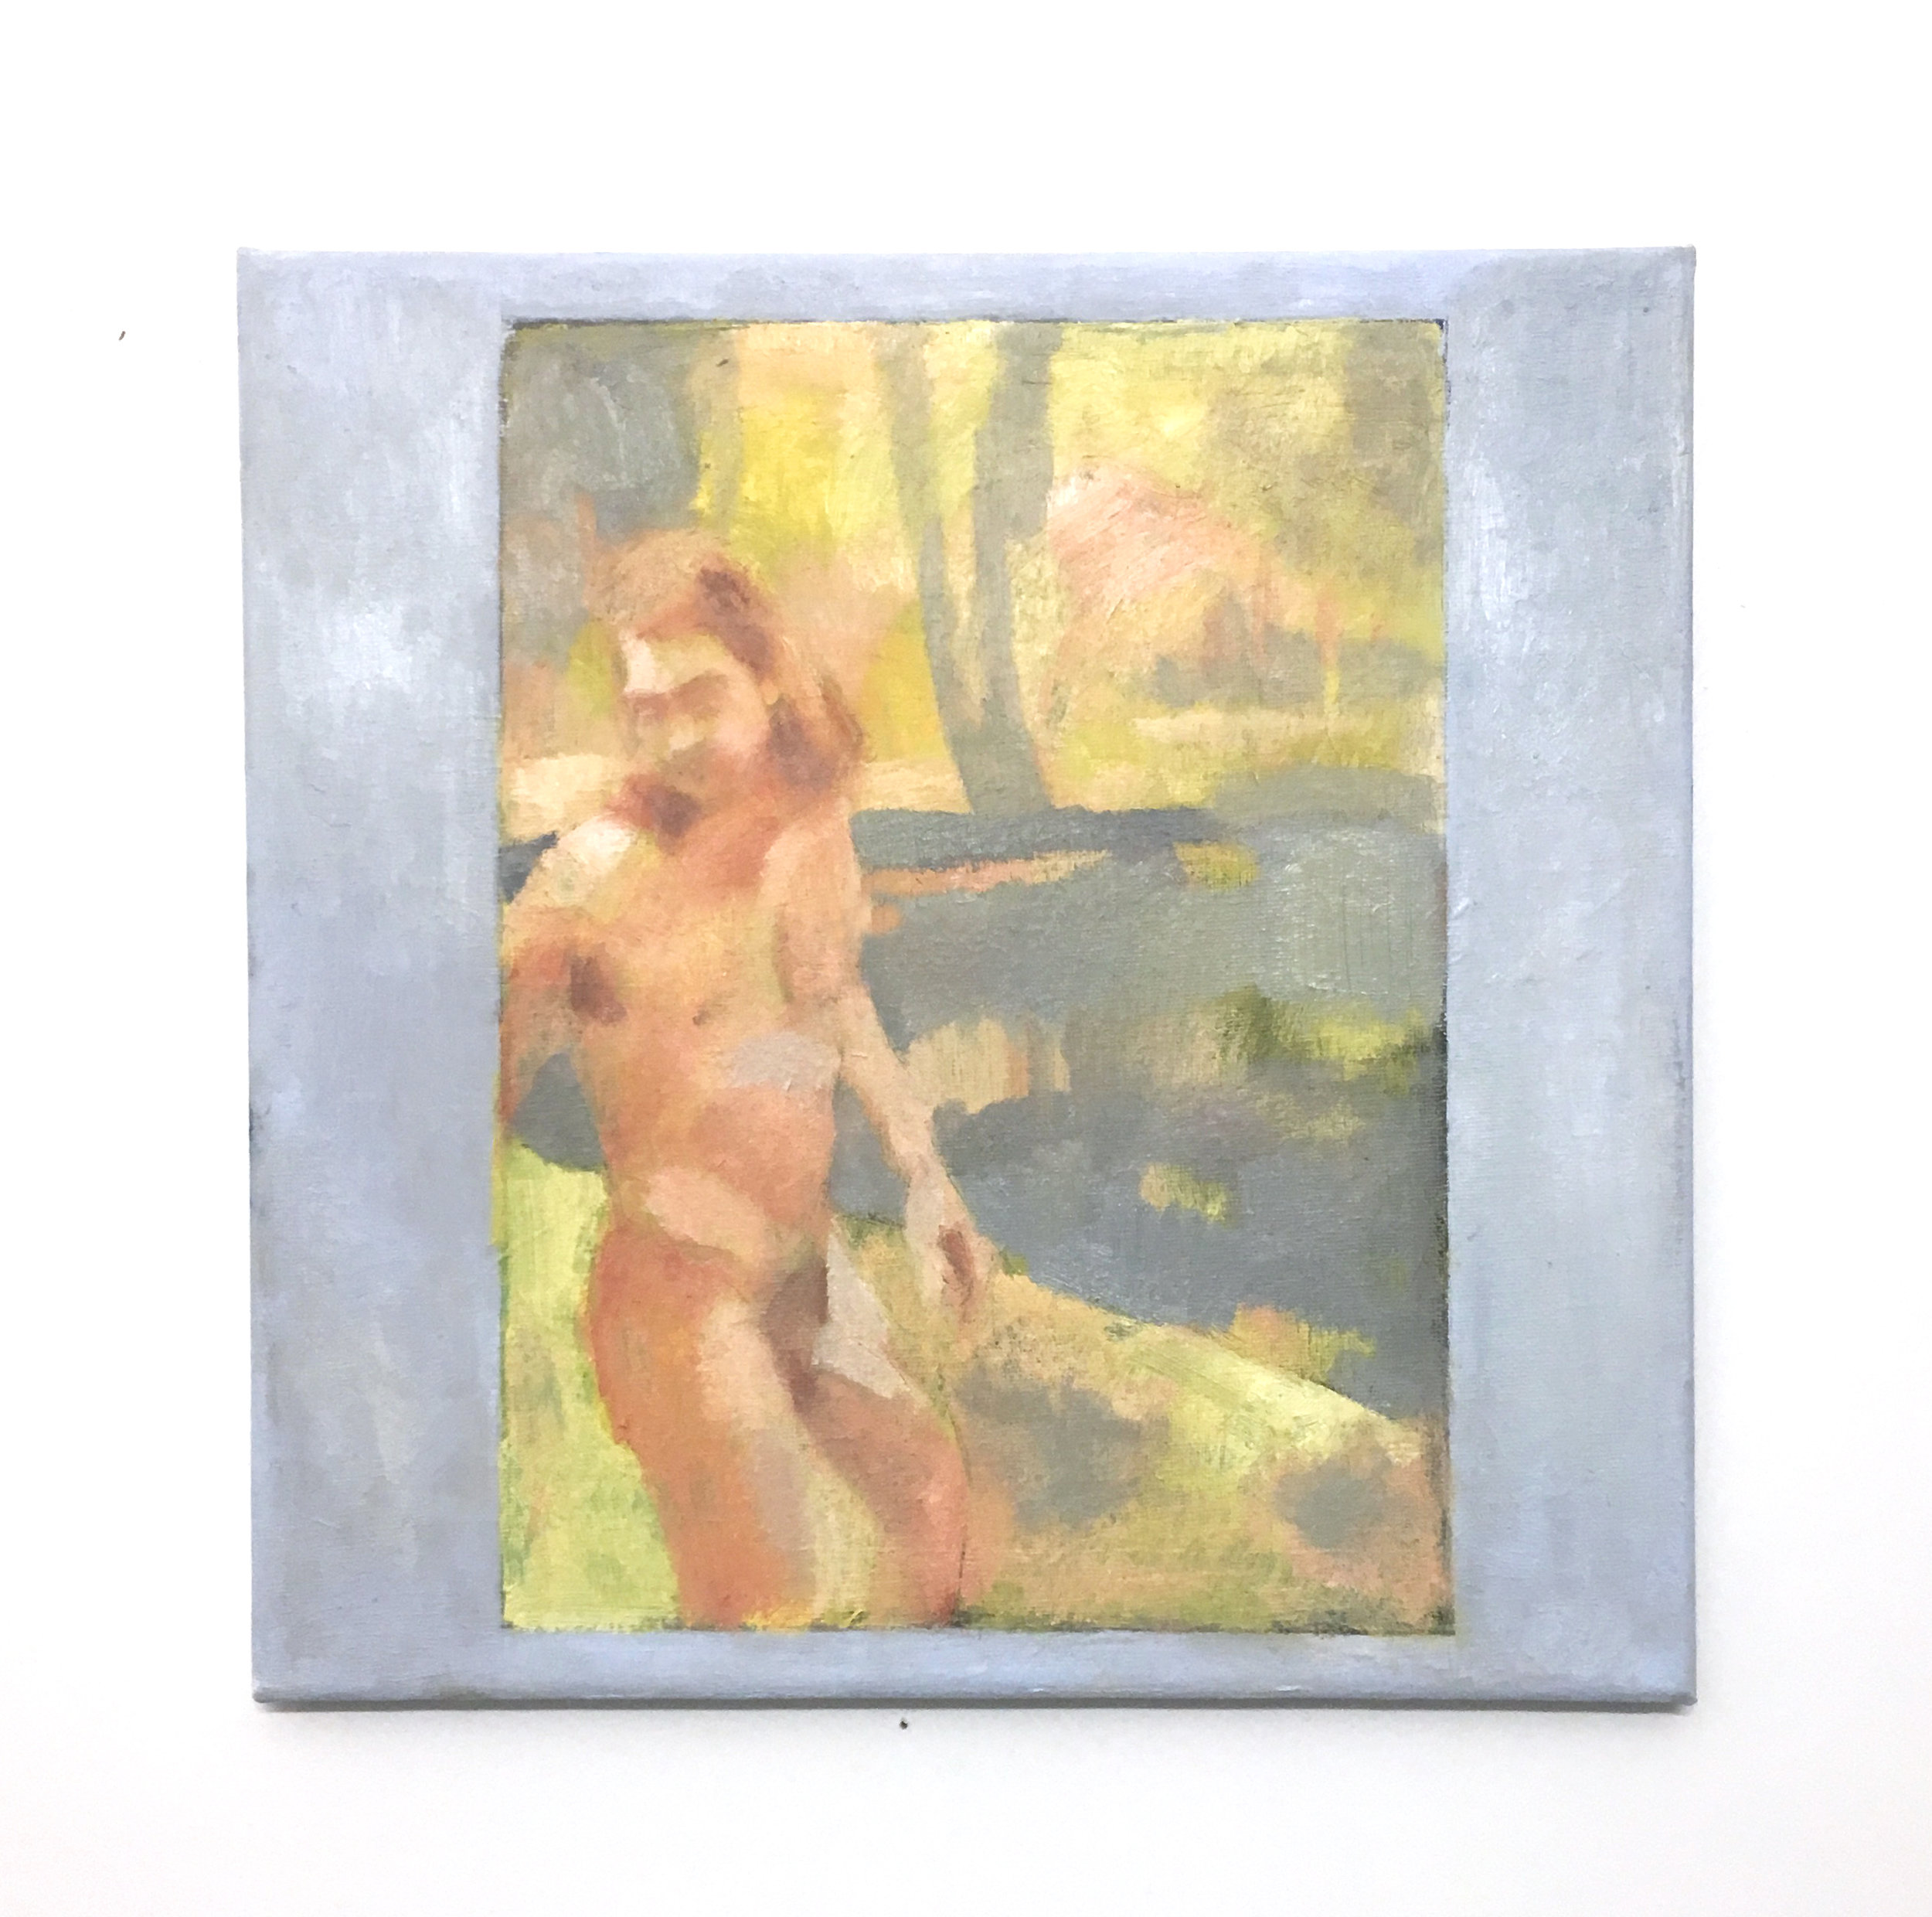 "Bather by a Creek in Timmulshult (Morning)    oil on canvas    12"" x 12""   2019"